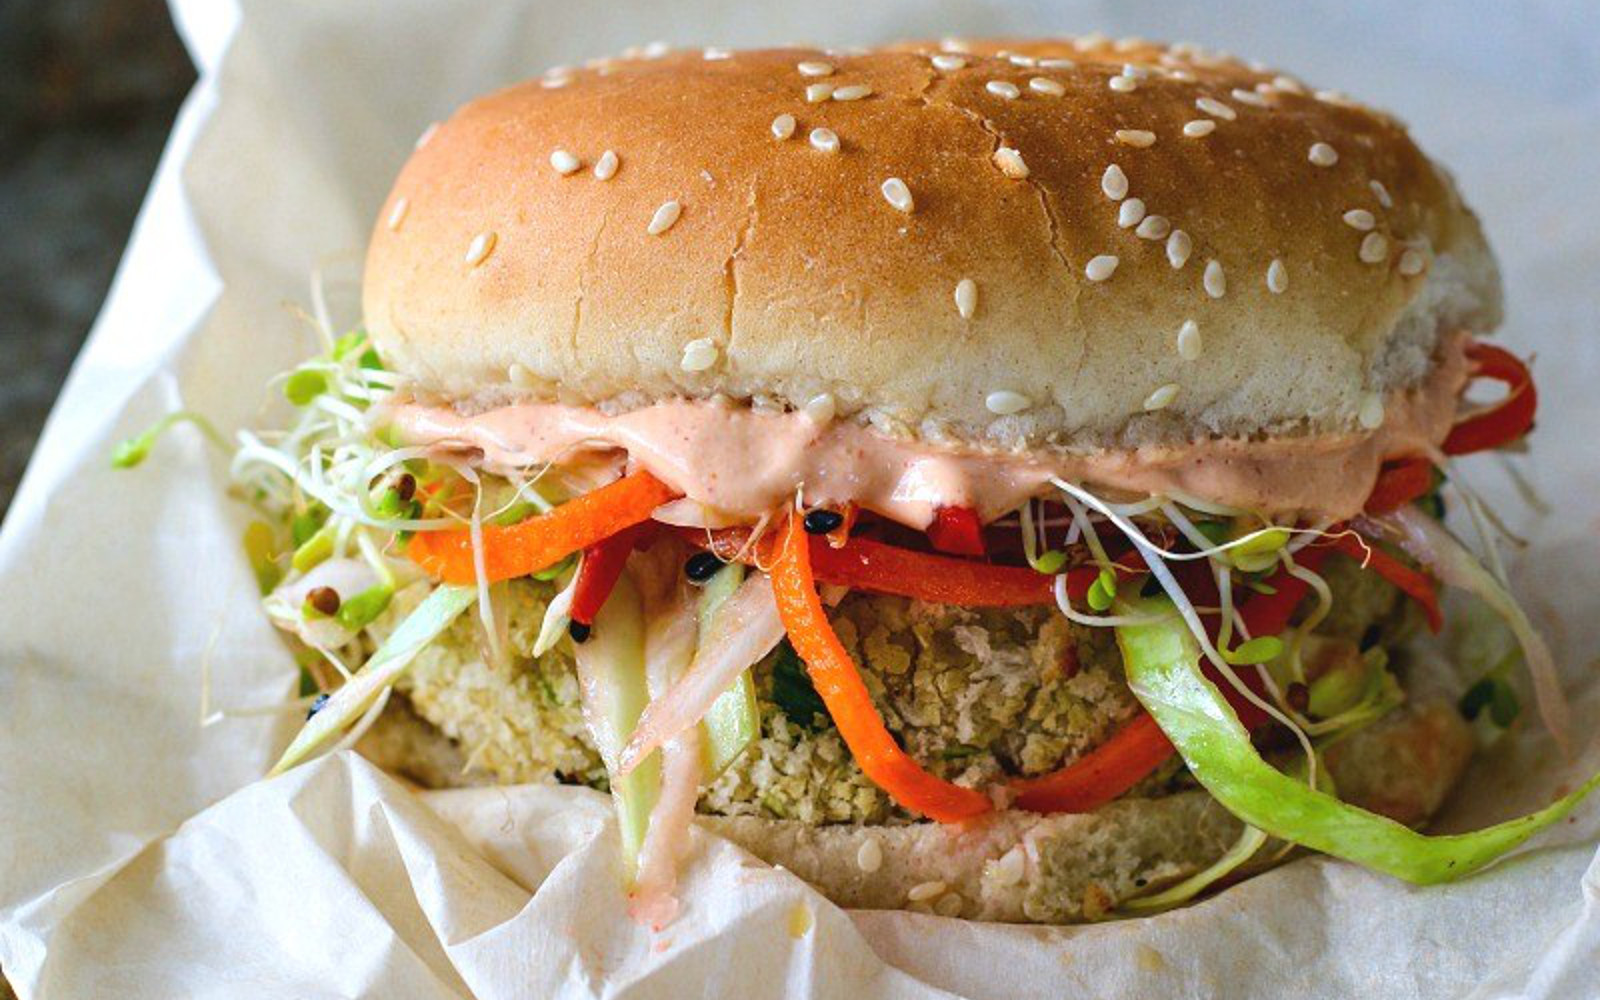 White Bean Burger With Sesame Ginger Slaw With a Gochujang Yogurt Spread